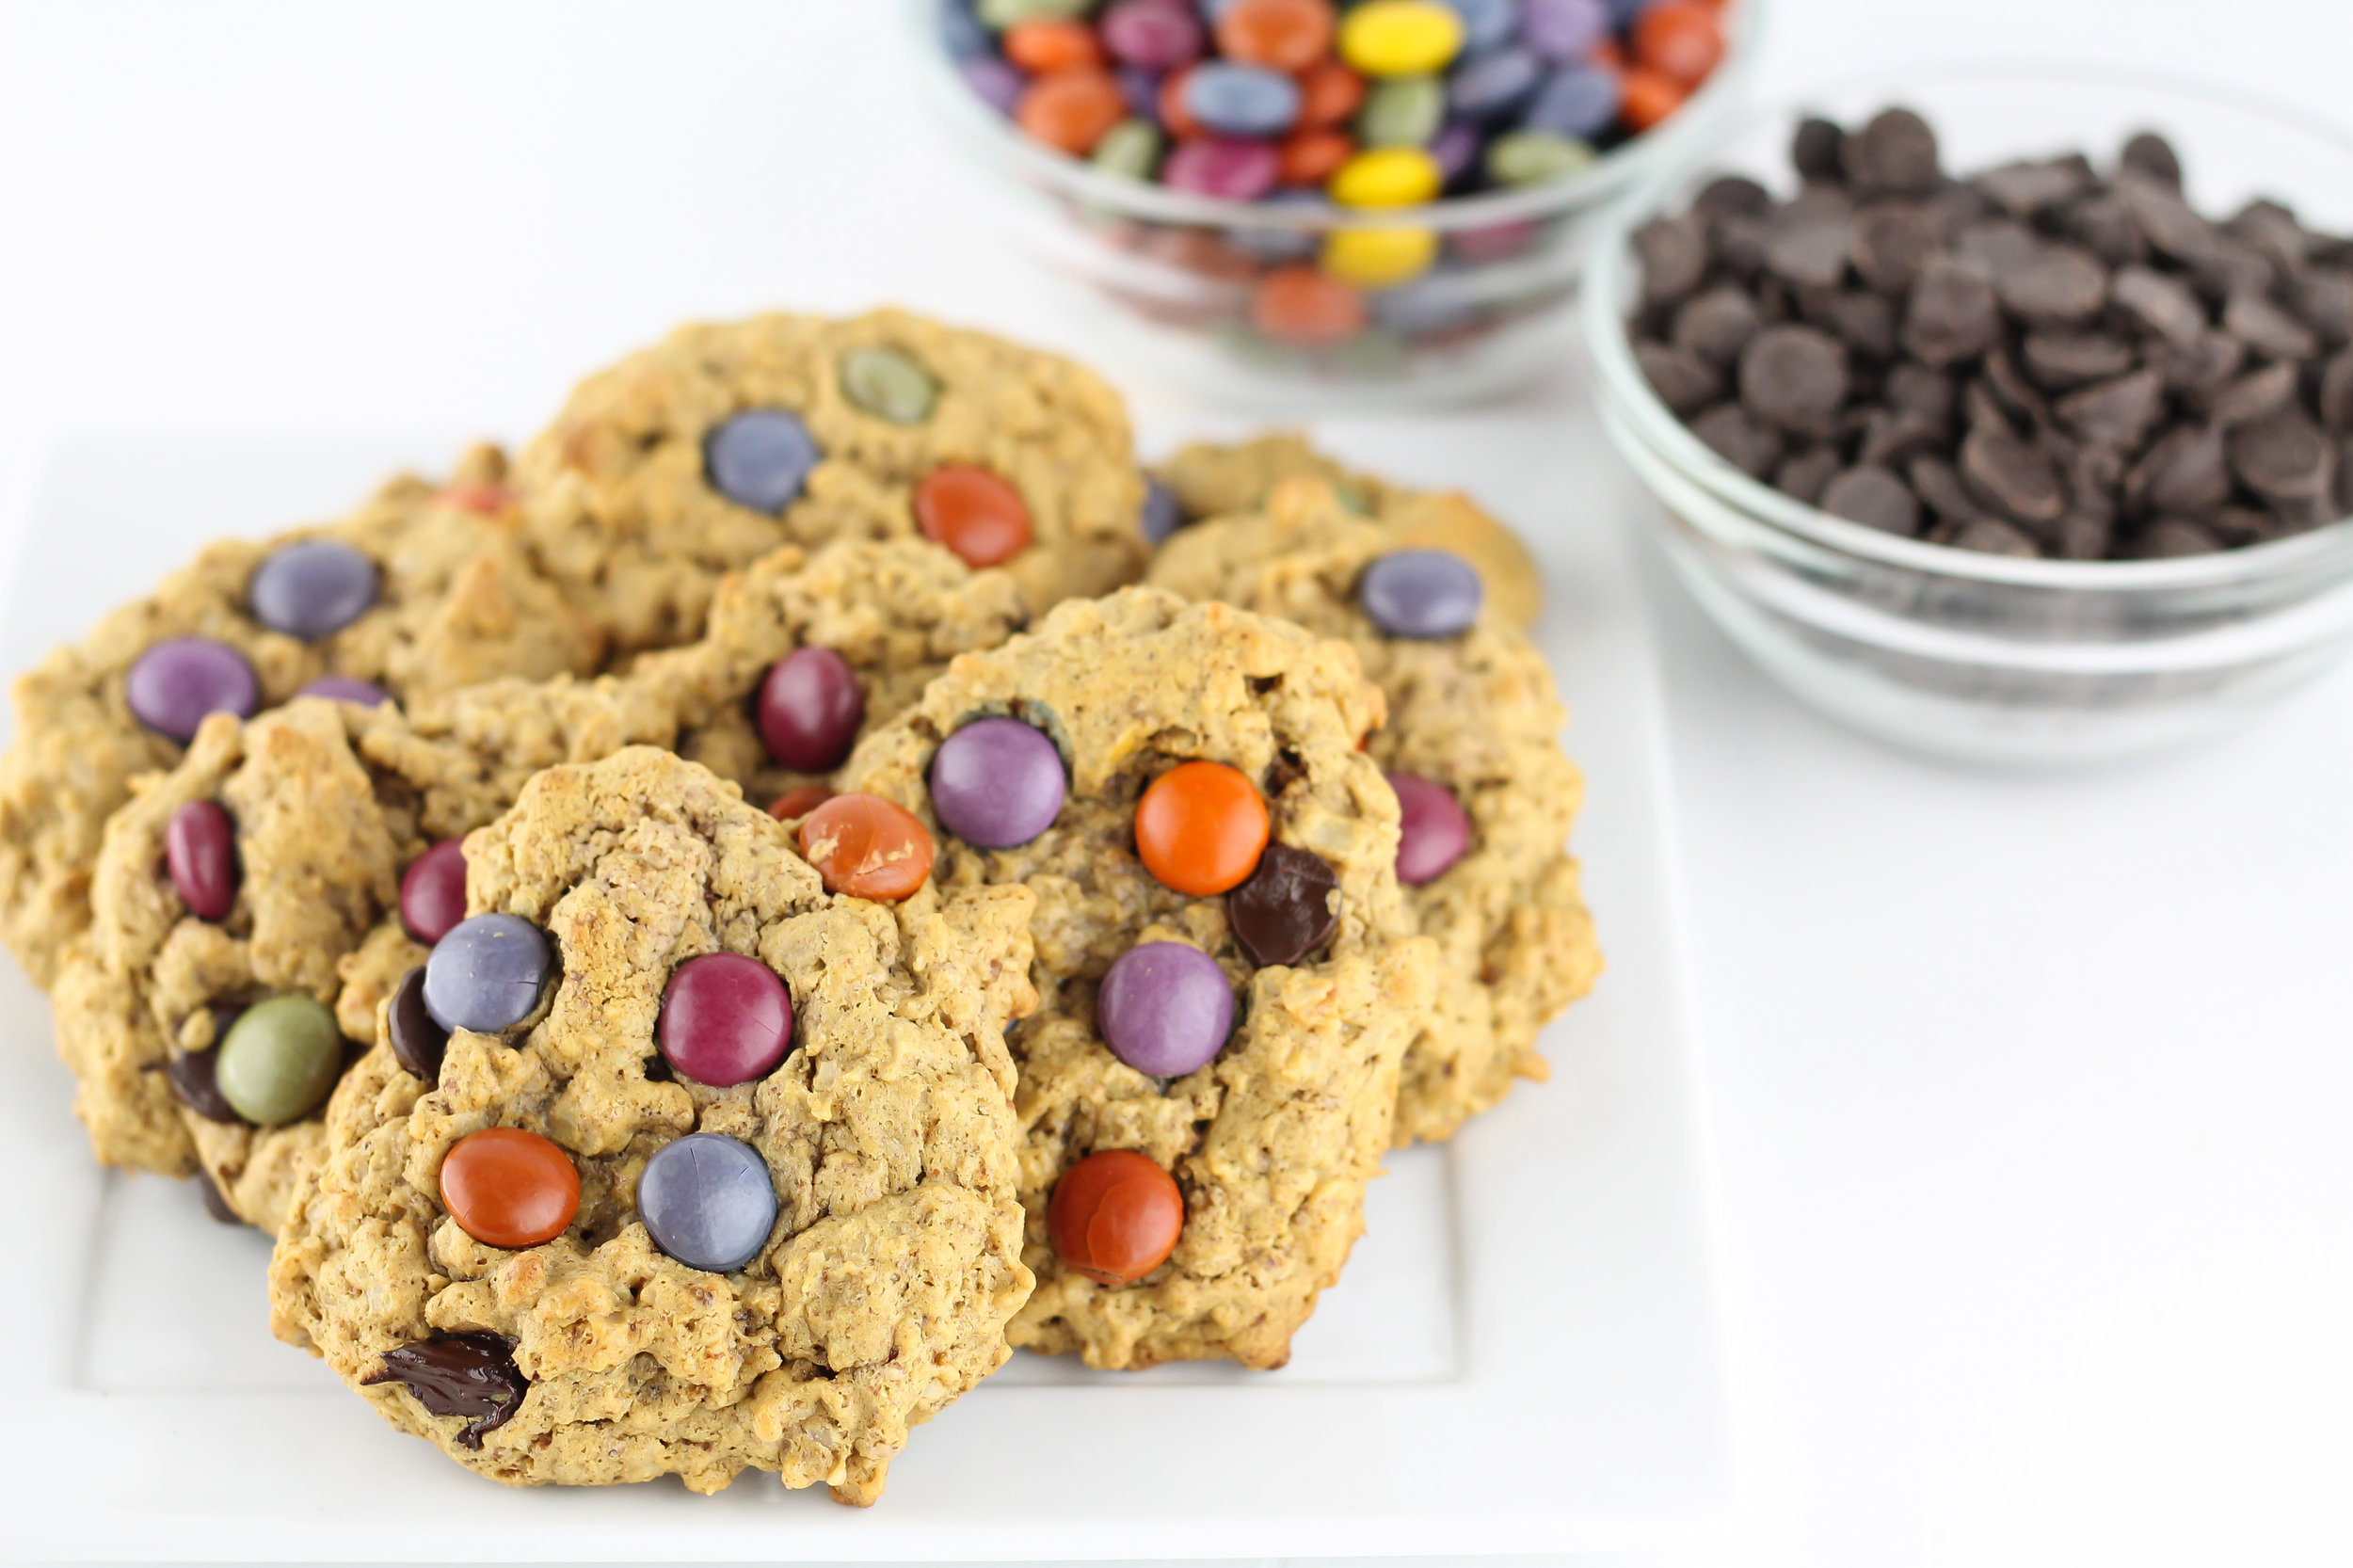 monster cookies, healthy monster cookies, no gluten, gluten free, no processed sugars, holiday cookies, christmas cookies, healthy cookies, low sugar, define fettle,